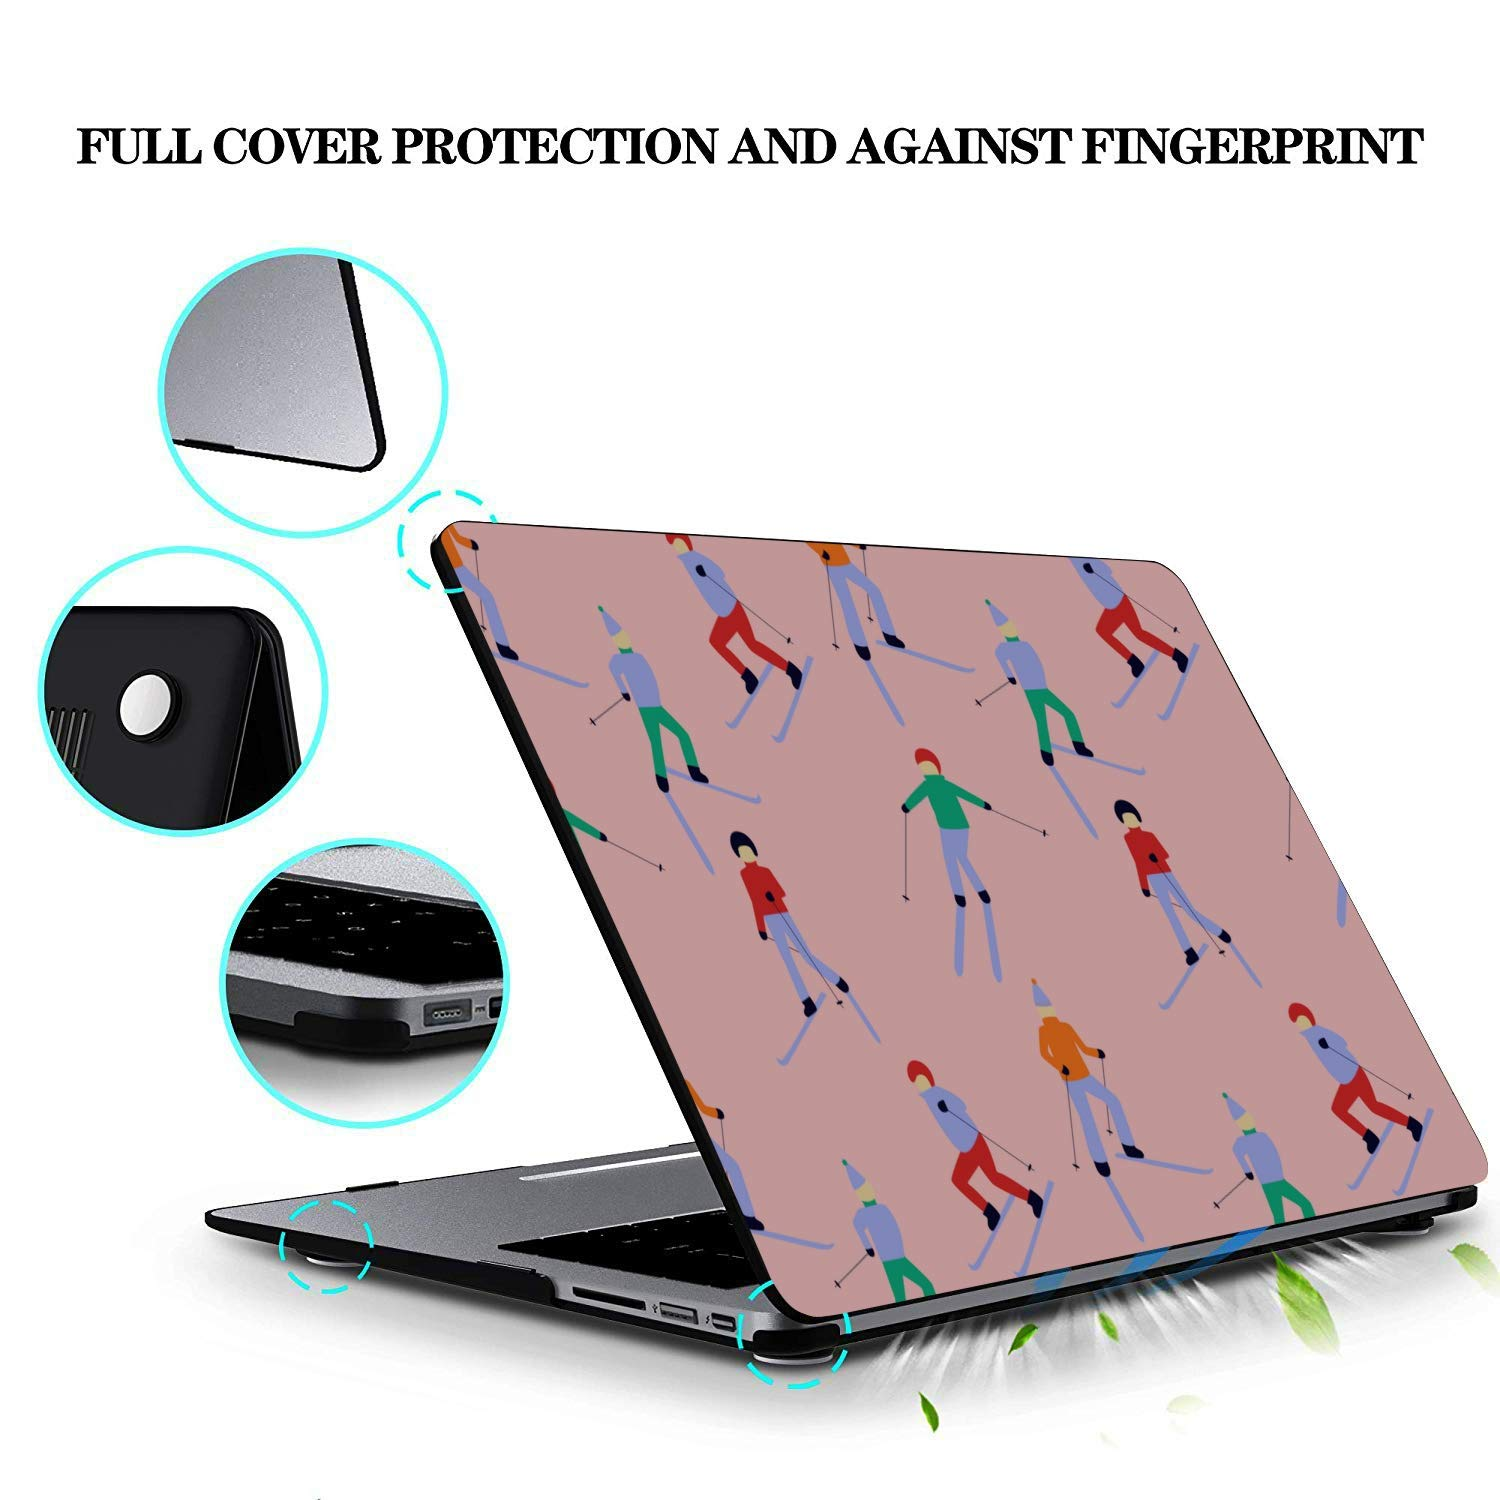 A1534 MacBook Case Skiing Extreme Sports Entertainment Plastic Hard Shell Compatible Mac Air 11 Pro 13 15 MacBook Pro 15 Accessories Protection for MacBook 2016-2019 Version